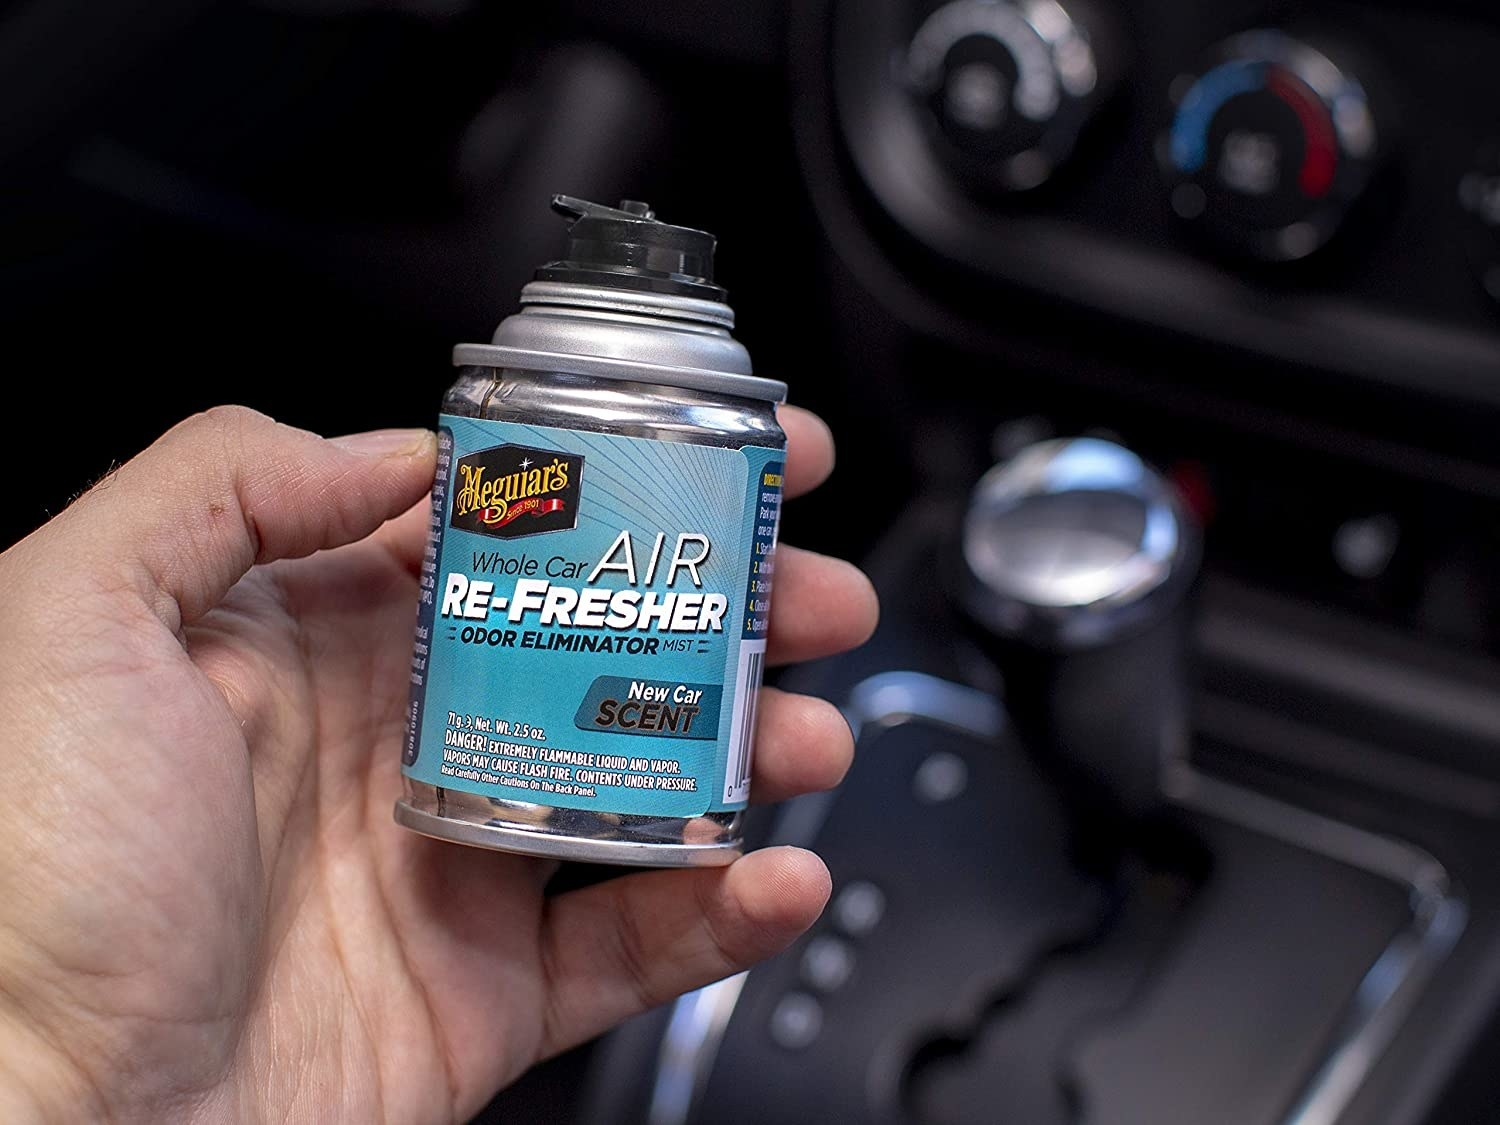 A person holds a small can of the product in a car